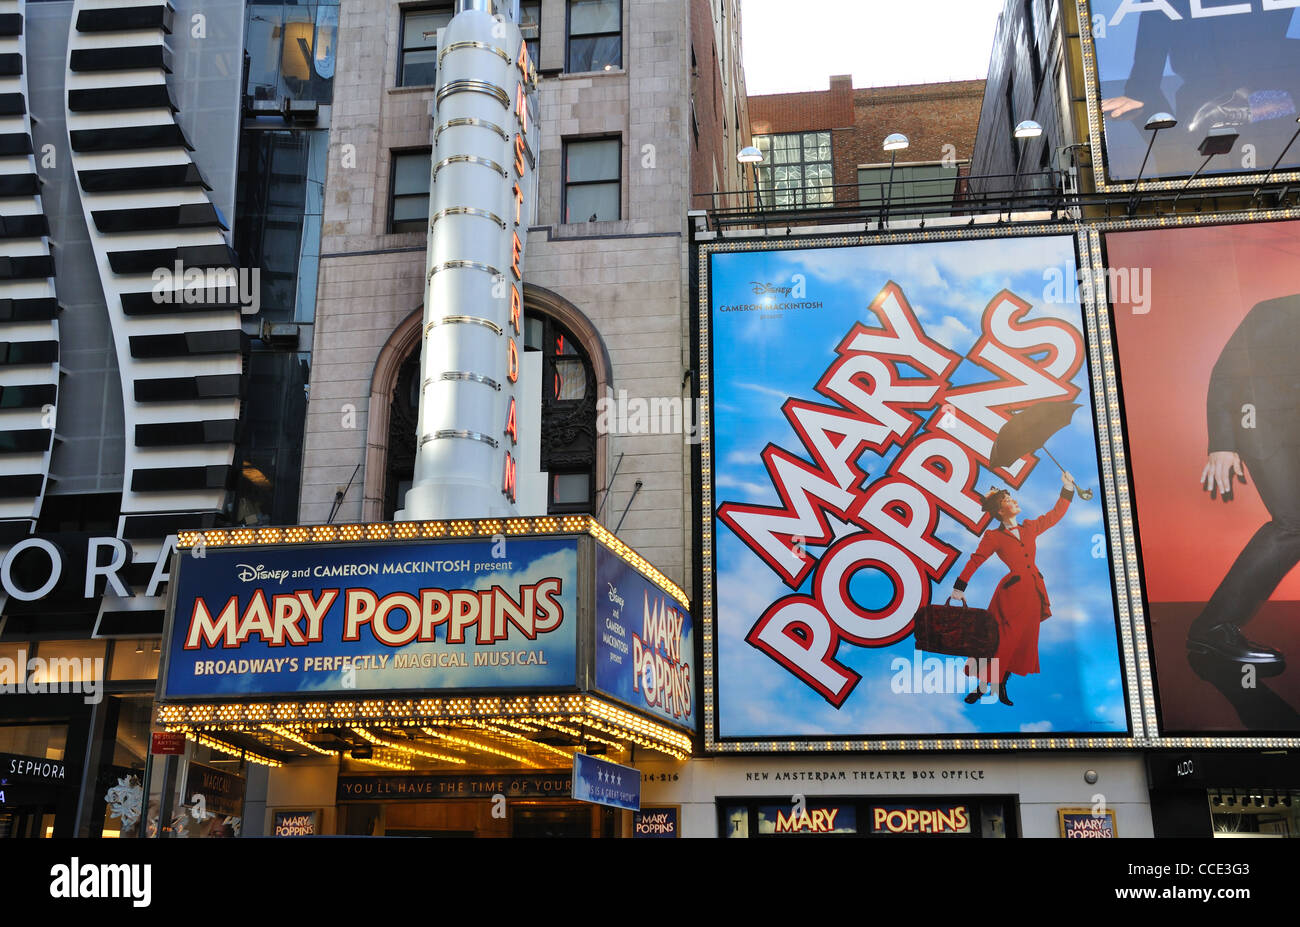 Broadway, Mary Poppins show poster, New York, USA Stock Photo